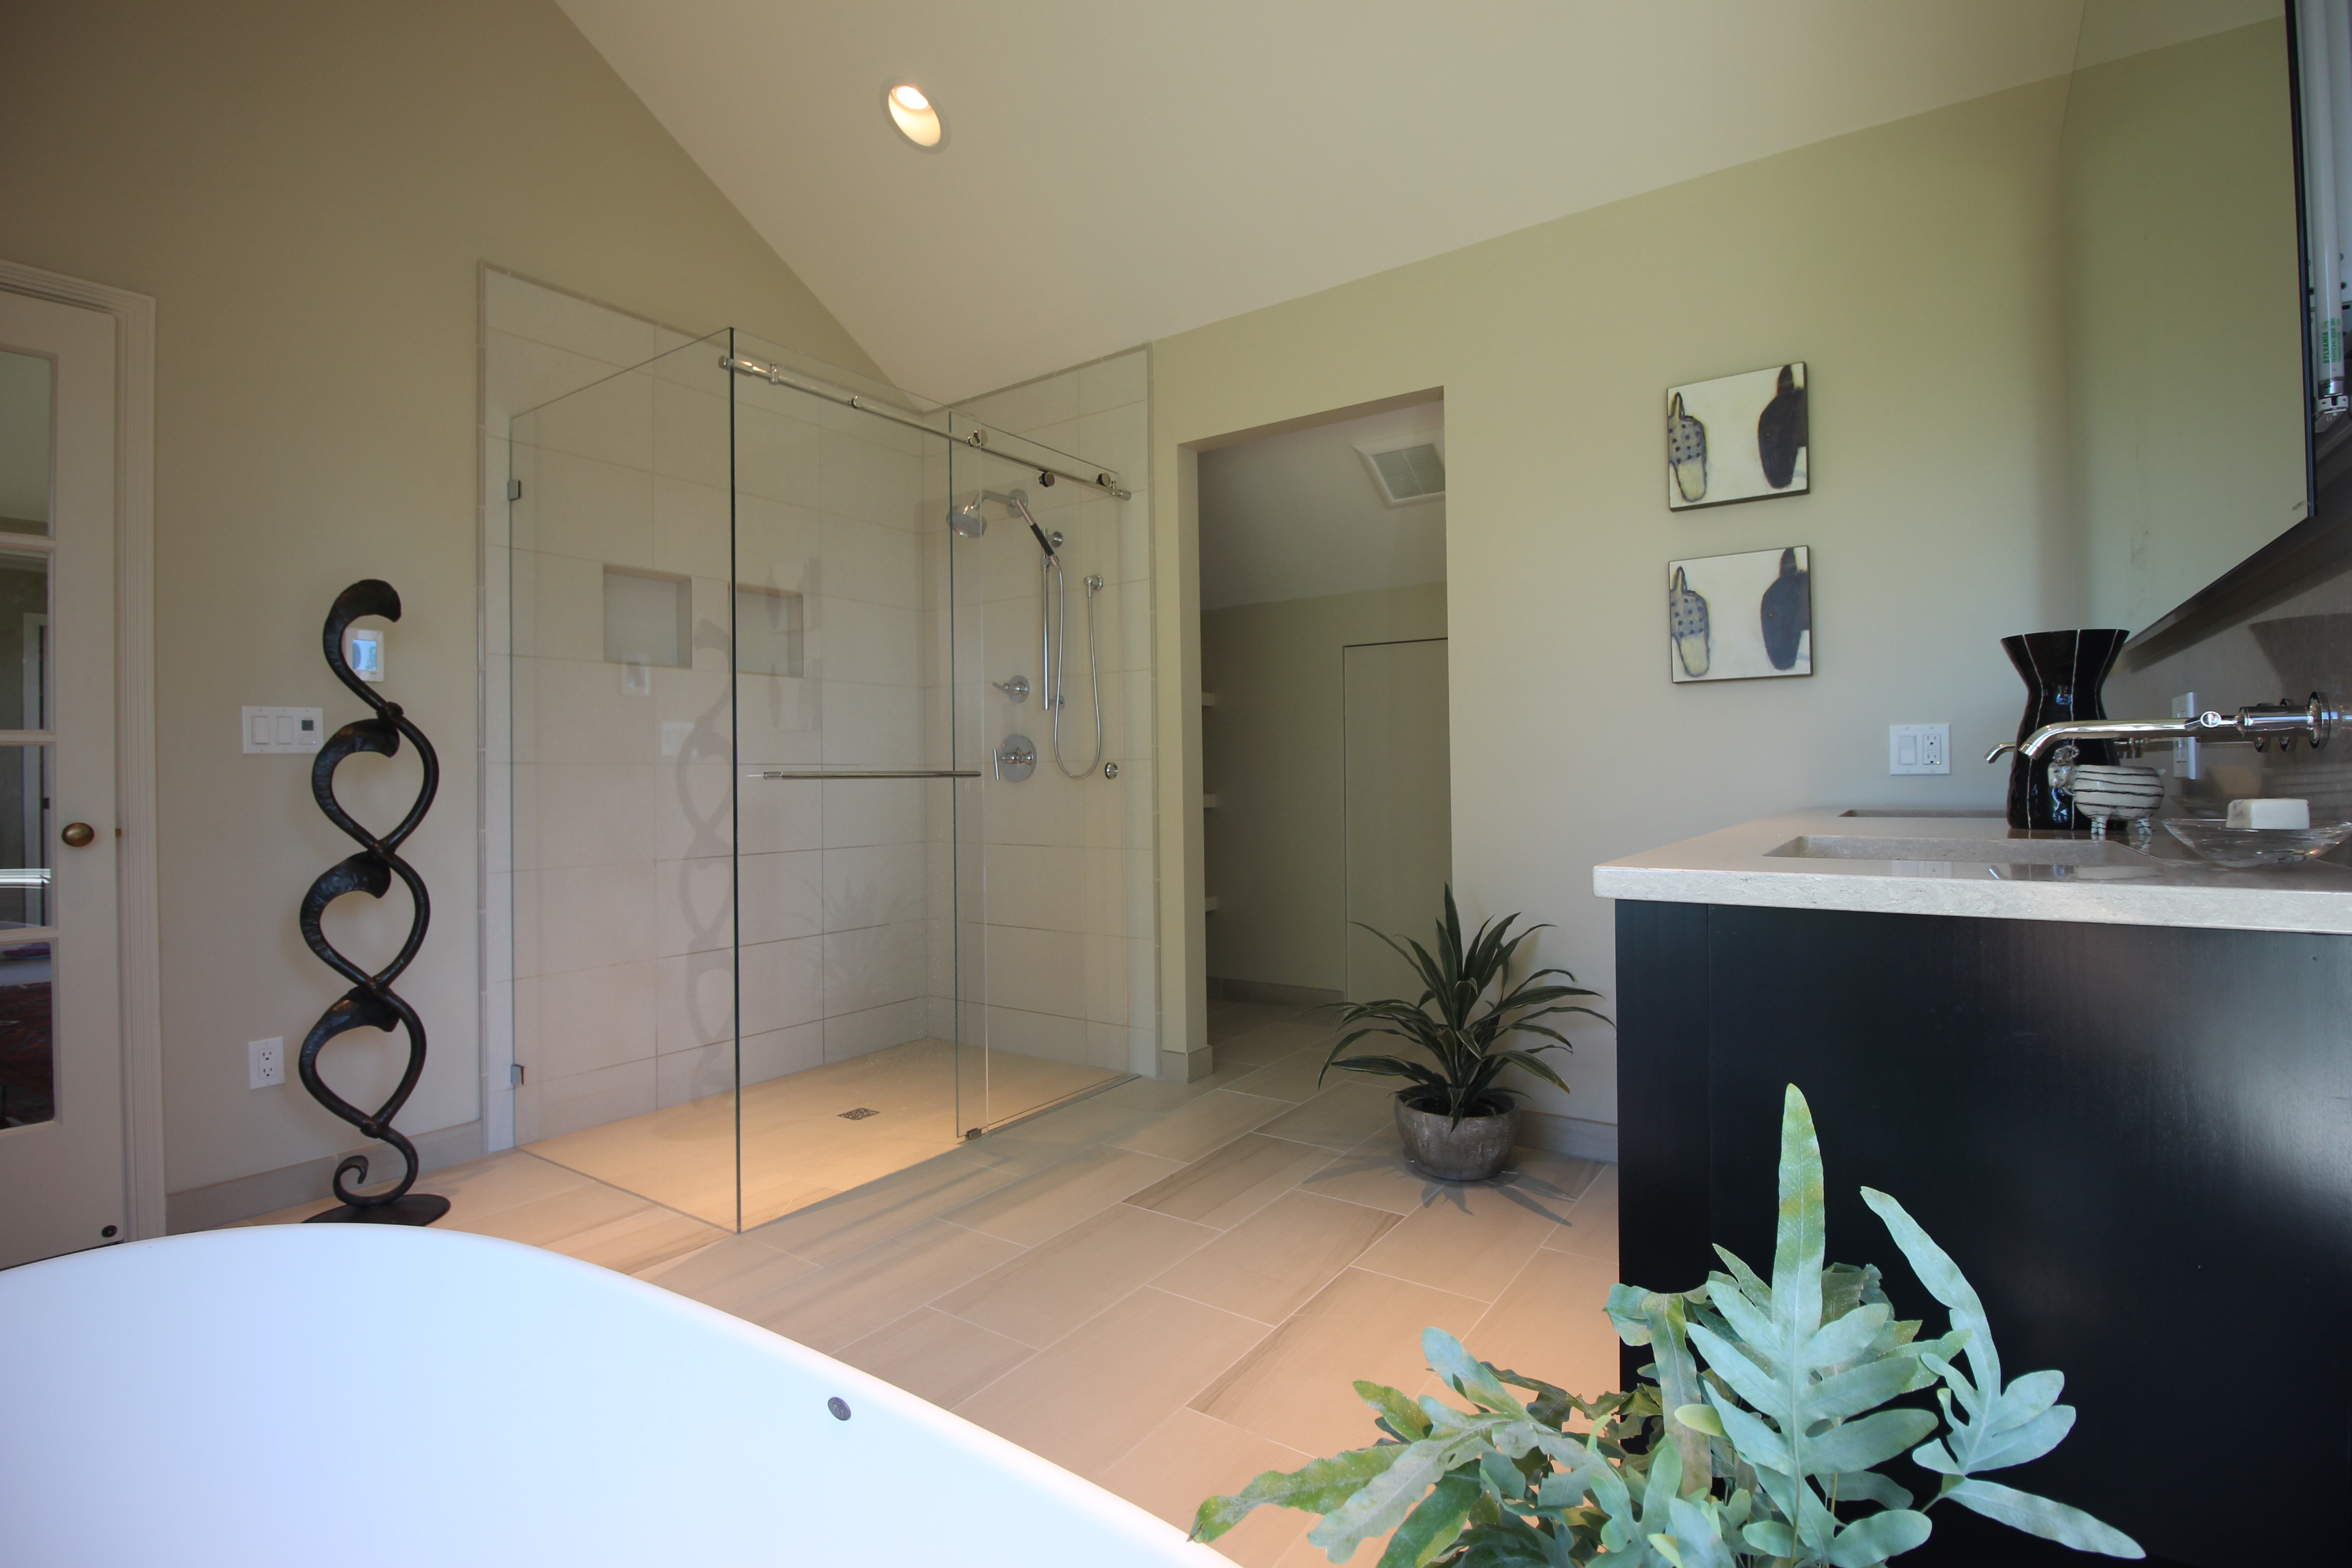 Vaulted ceilings home run solutions Local bathroom remodeling